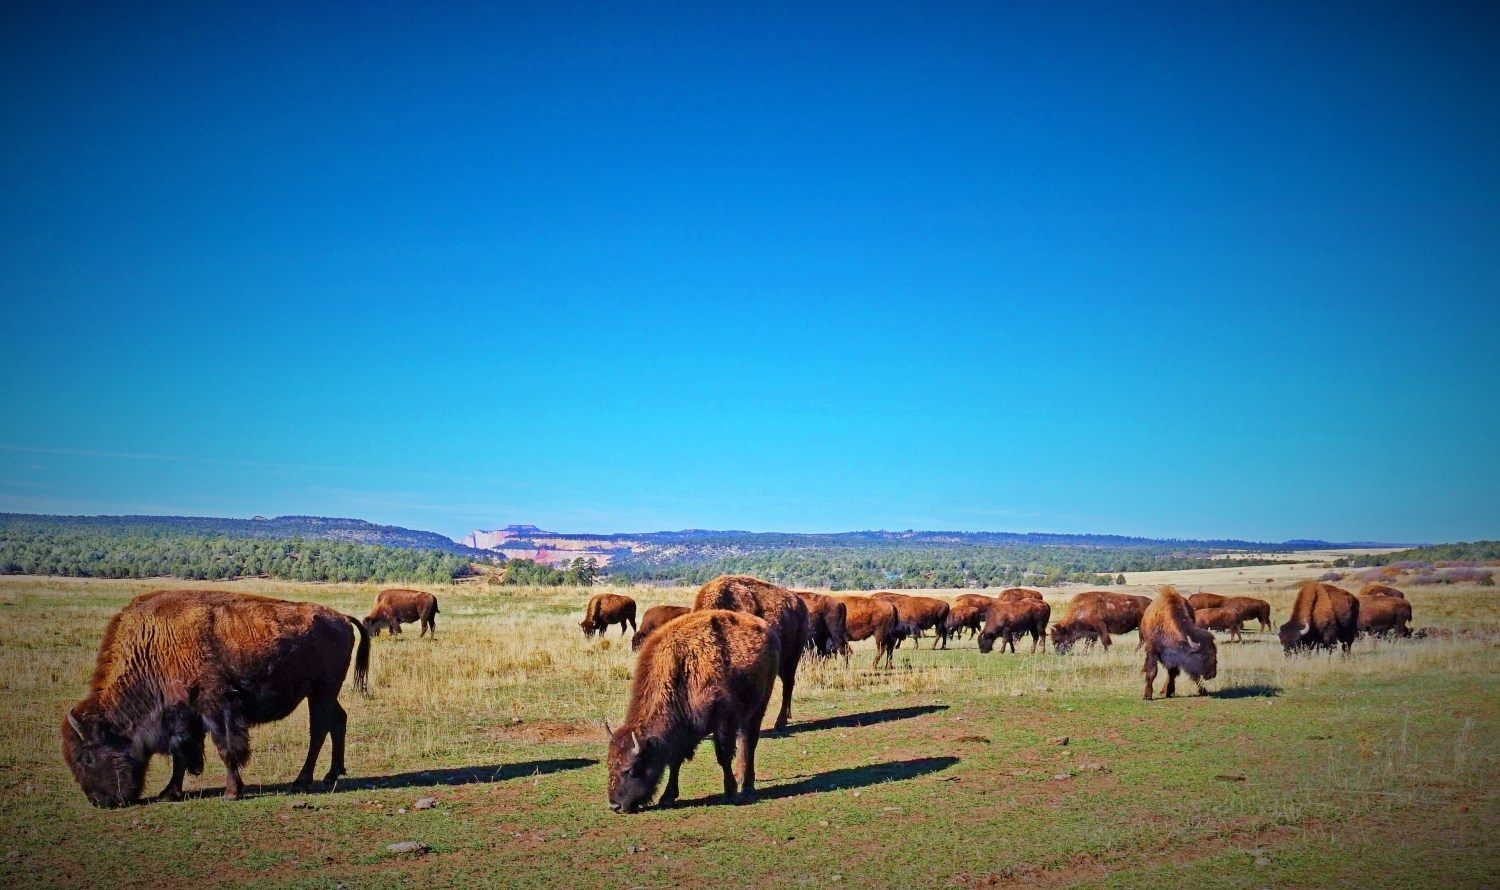 The American bison herd near Zion National Park, Utah